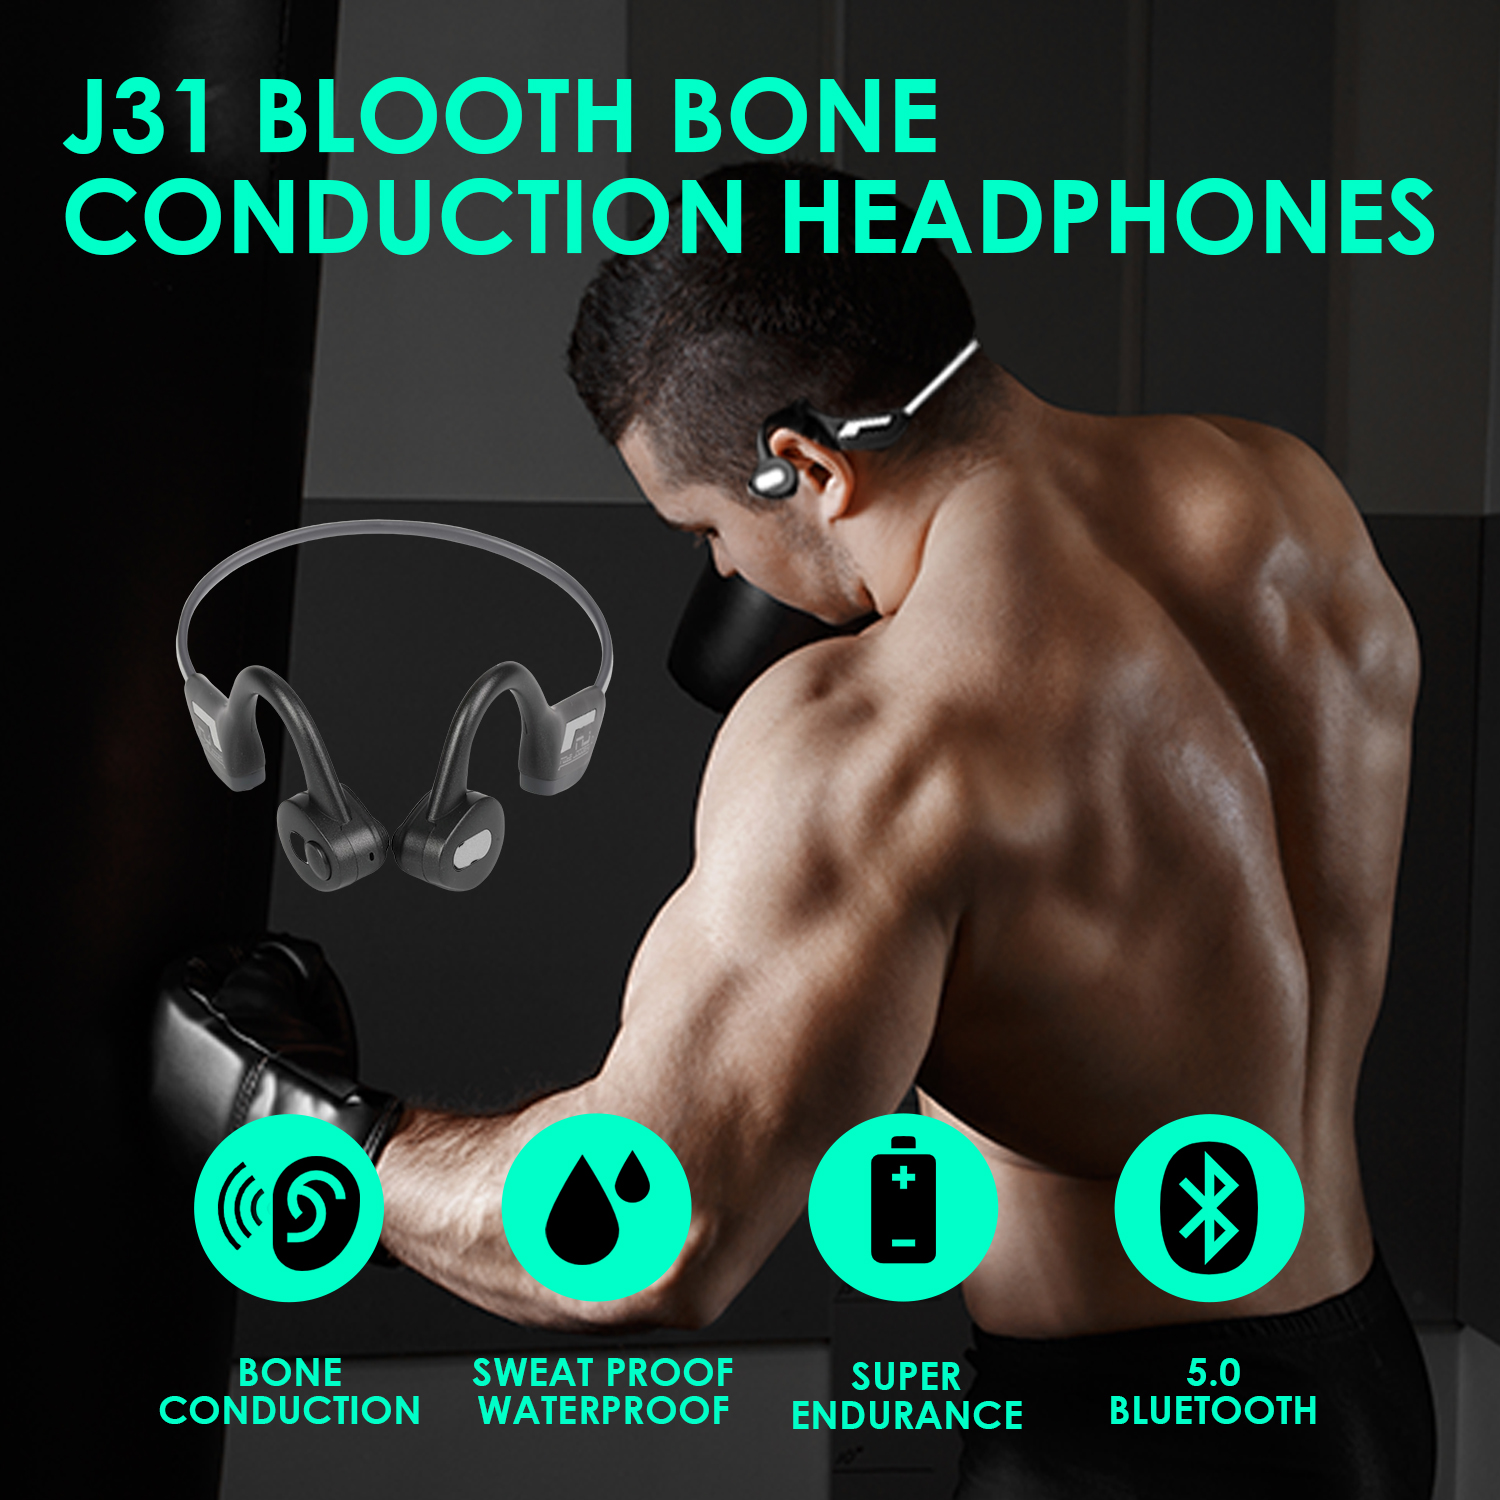 J31 Wireless Bone Conduction Headphone Bluetooth 5.0 Binaural Stereo Bone Headset Sweatproof Ultra Light Luminous Sports Headset